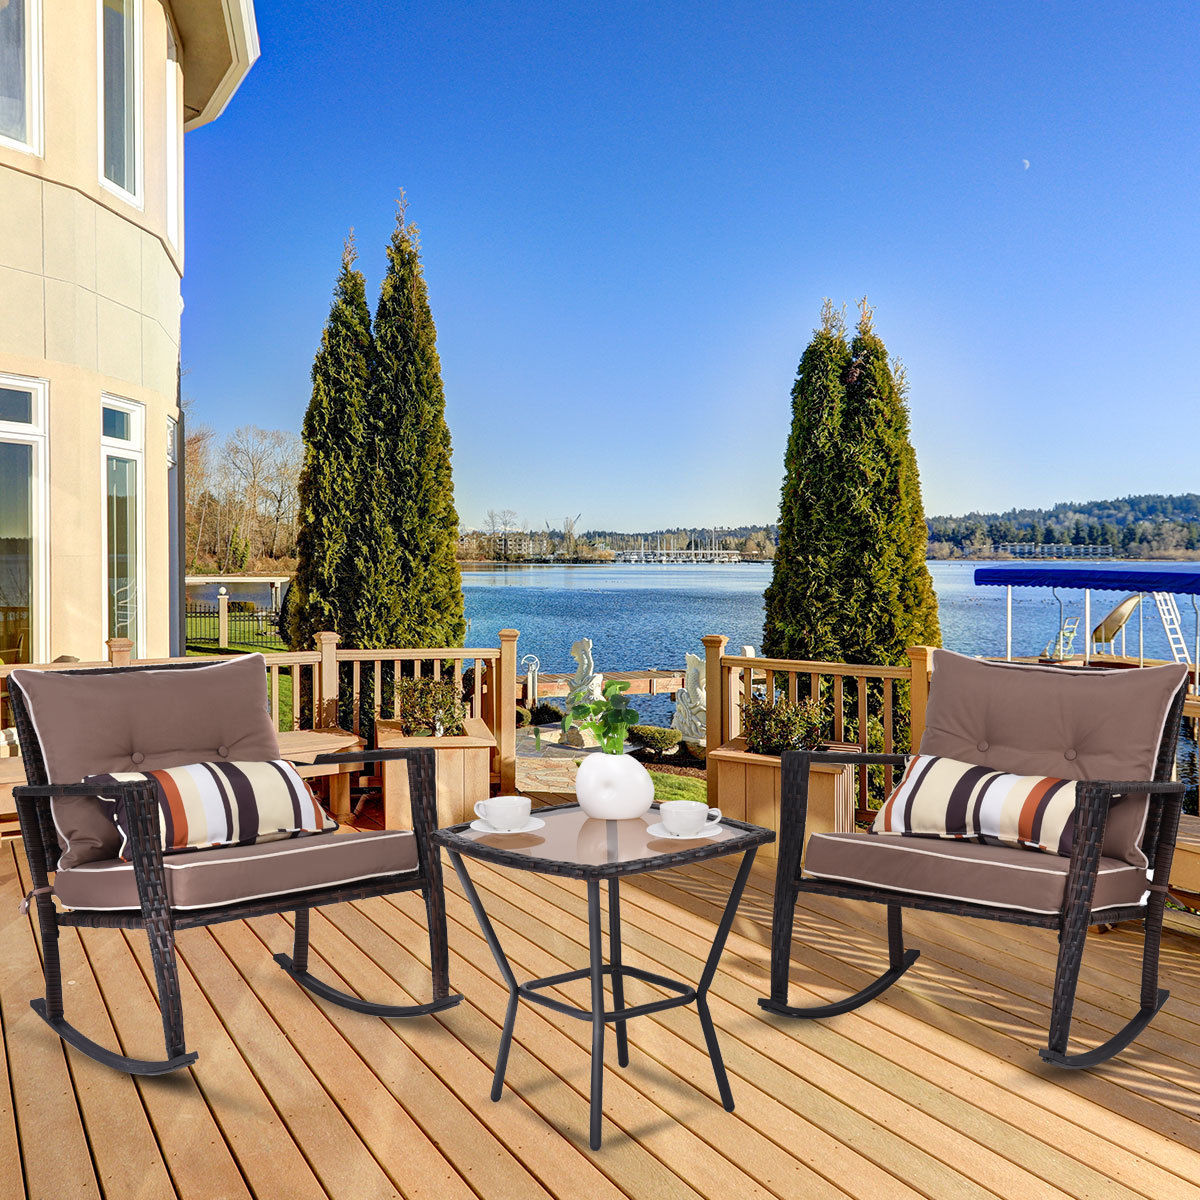 Costway 3 PCS Patio Rattan Wicker Furniture Set Rocking Chair Coffee Table W Cushions by Costway